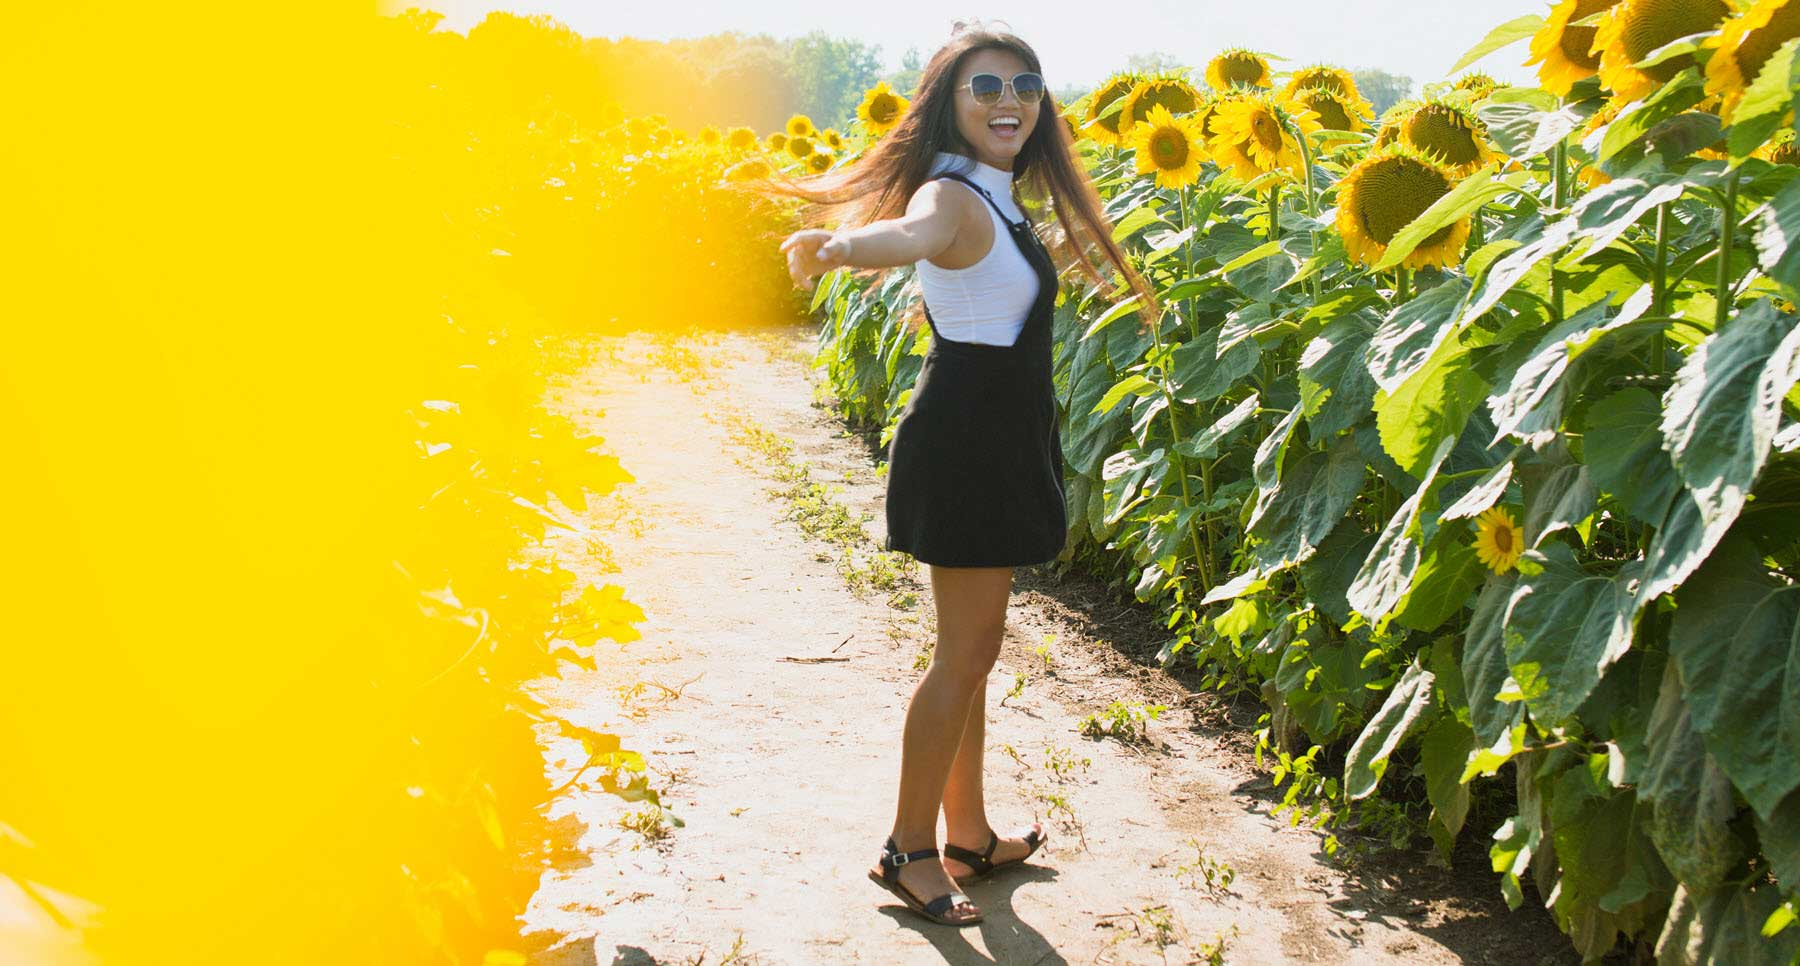 Girl-smiling-in-a-field-of-sunflowers